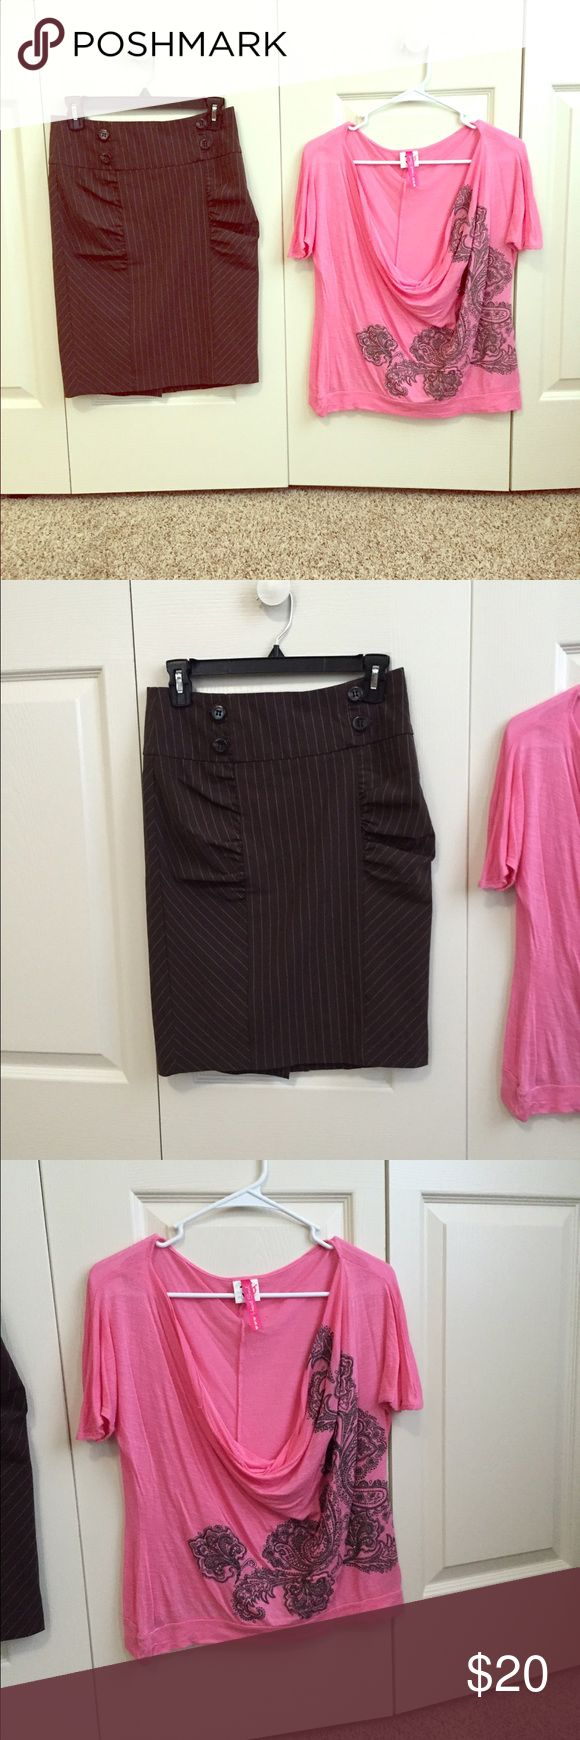 Skirt & shirt combo Brown pencil skirt and matching pink shirt. The shirt has a brown design that matches perfectly with the skirt. Perfect for any summer outing! Outfit was only worn one time! SKIRT SIZE 3, SHIRT MEDIUM Skirts Pencil